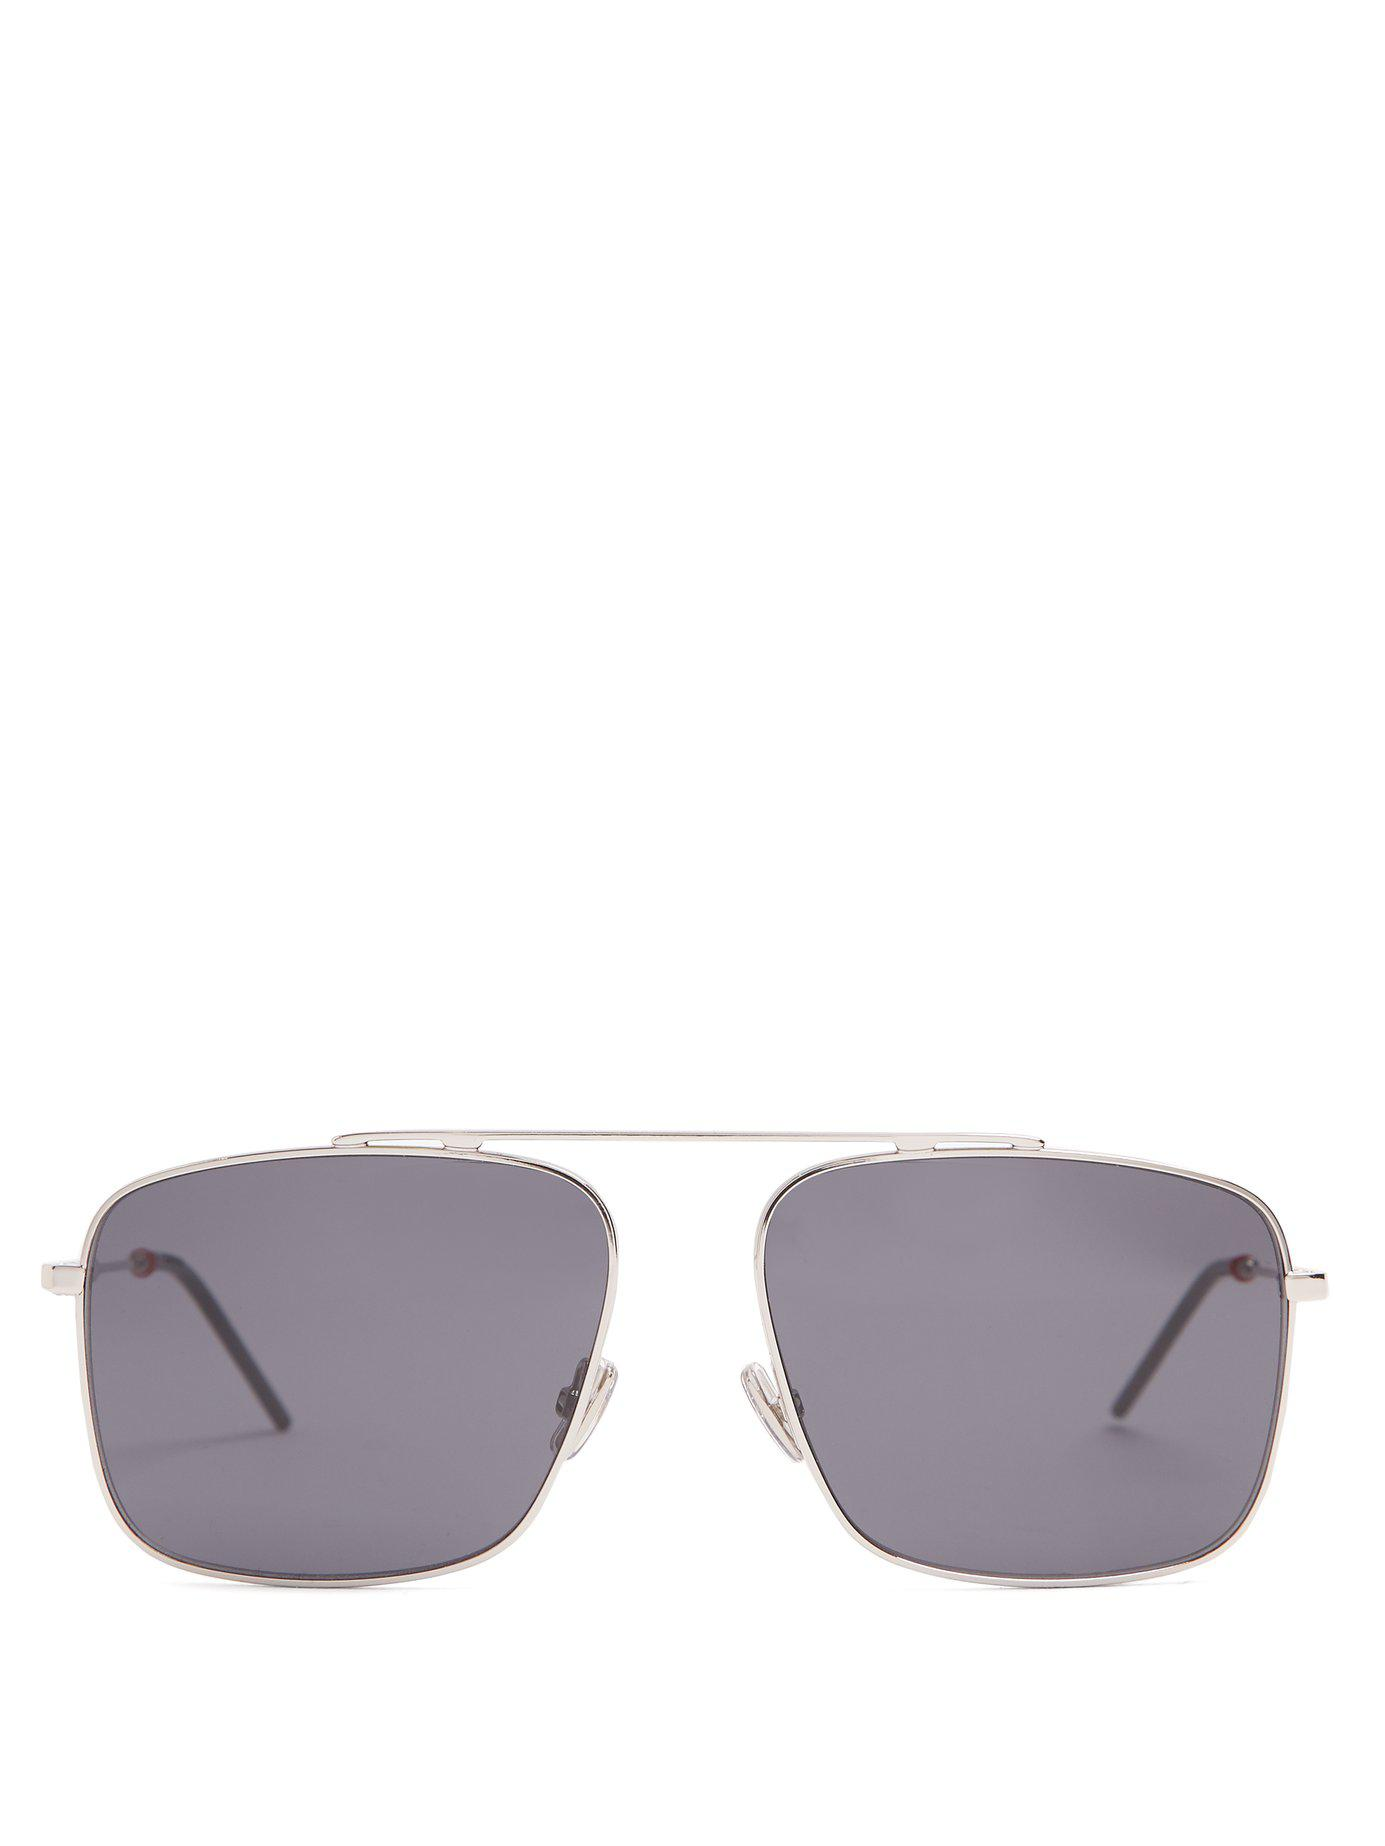 5f74931157b5 Lyst - Dior Homme Square Frame Metal Sunglasses in Metallic for Men